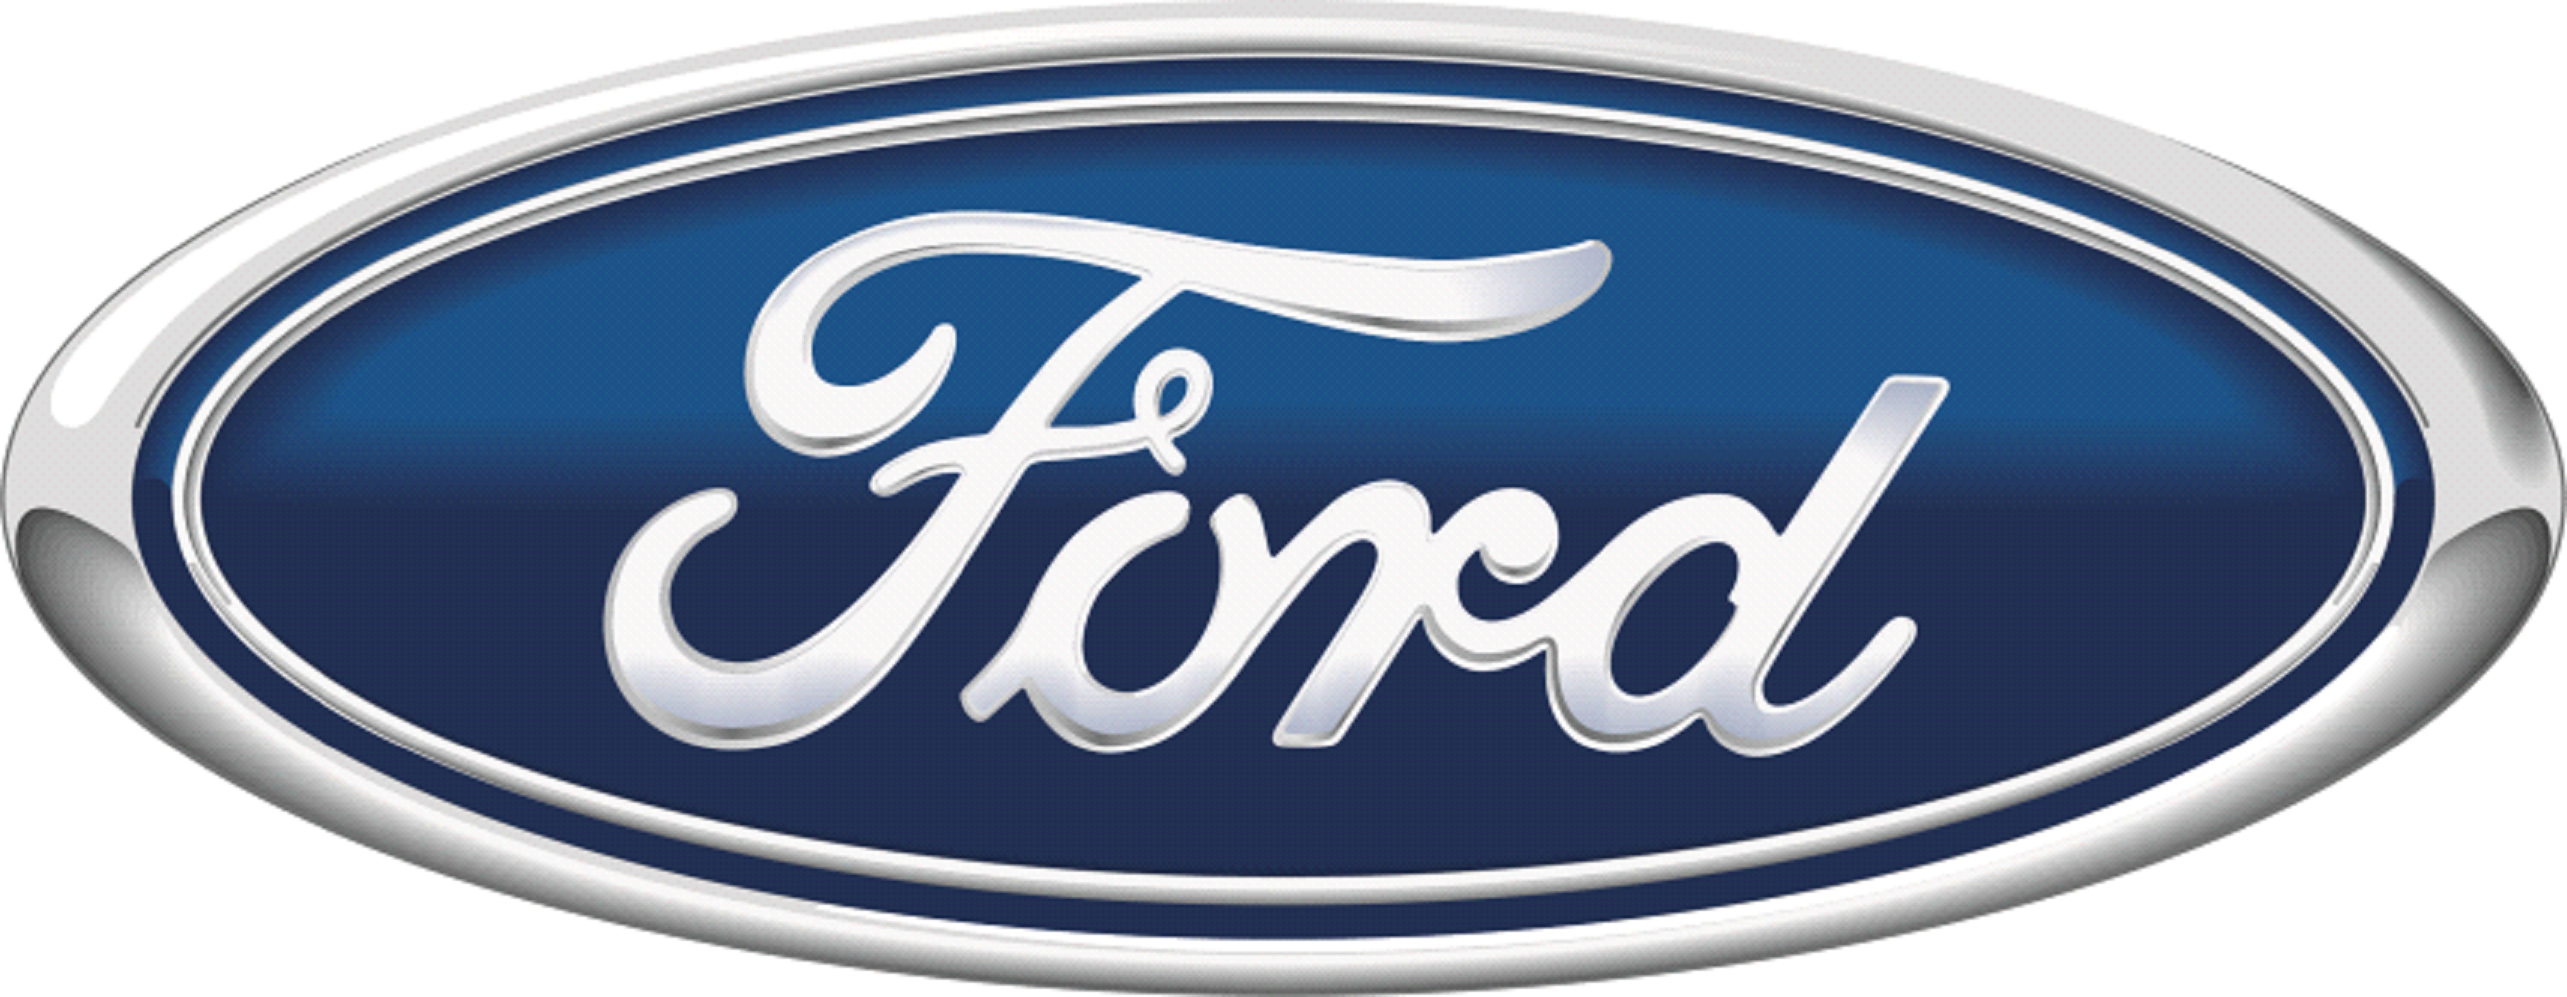 11474-ford-logo.jpg (Tue May 26 09:30:41 EDT 2015)